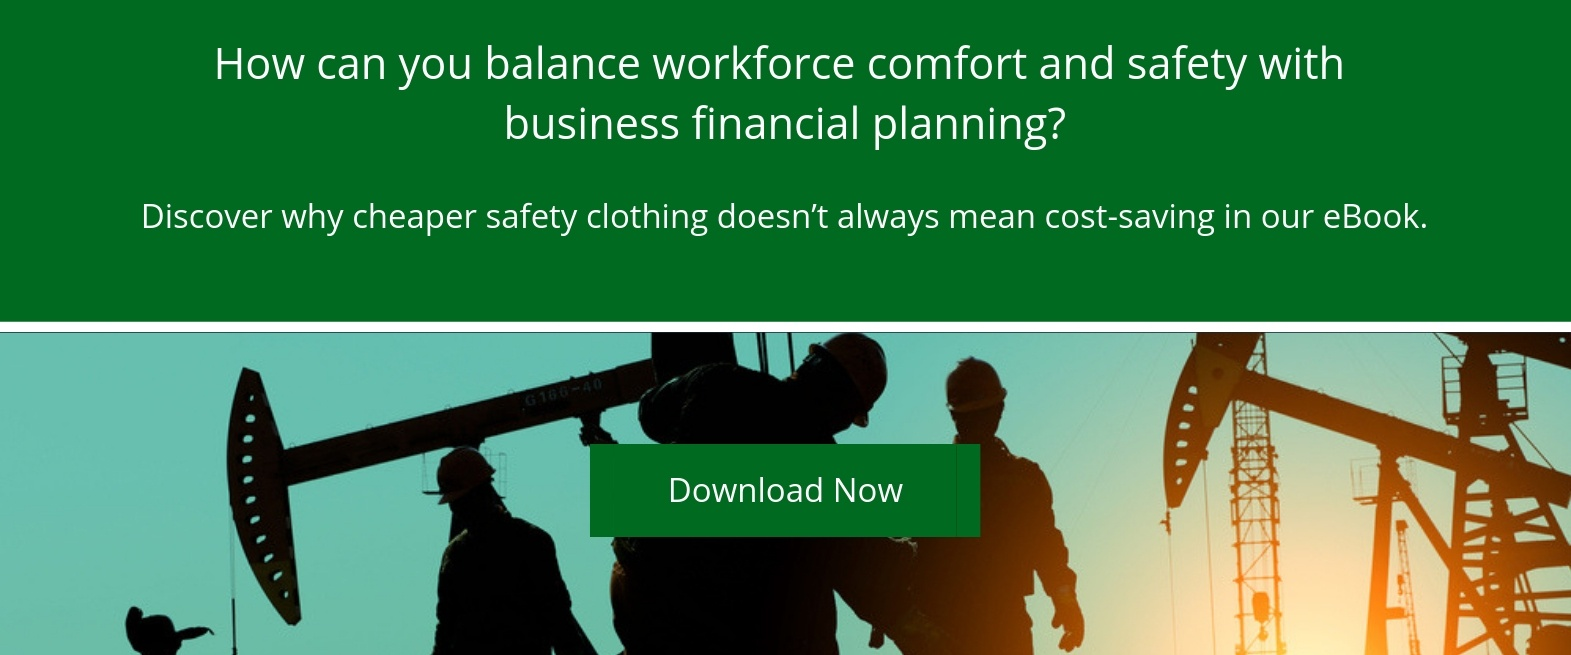 Balancing workforce comfort and safety: Download our eBook